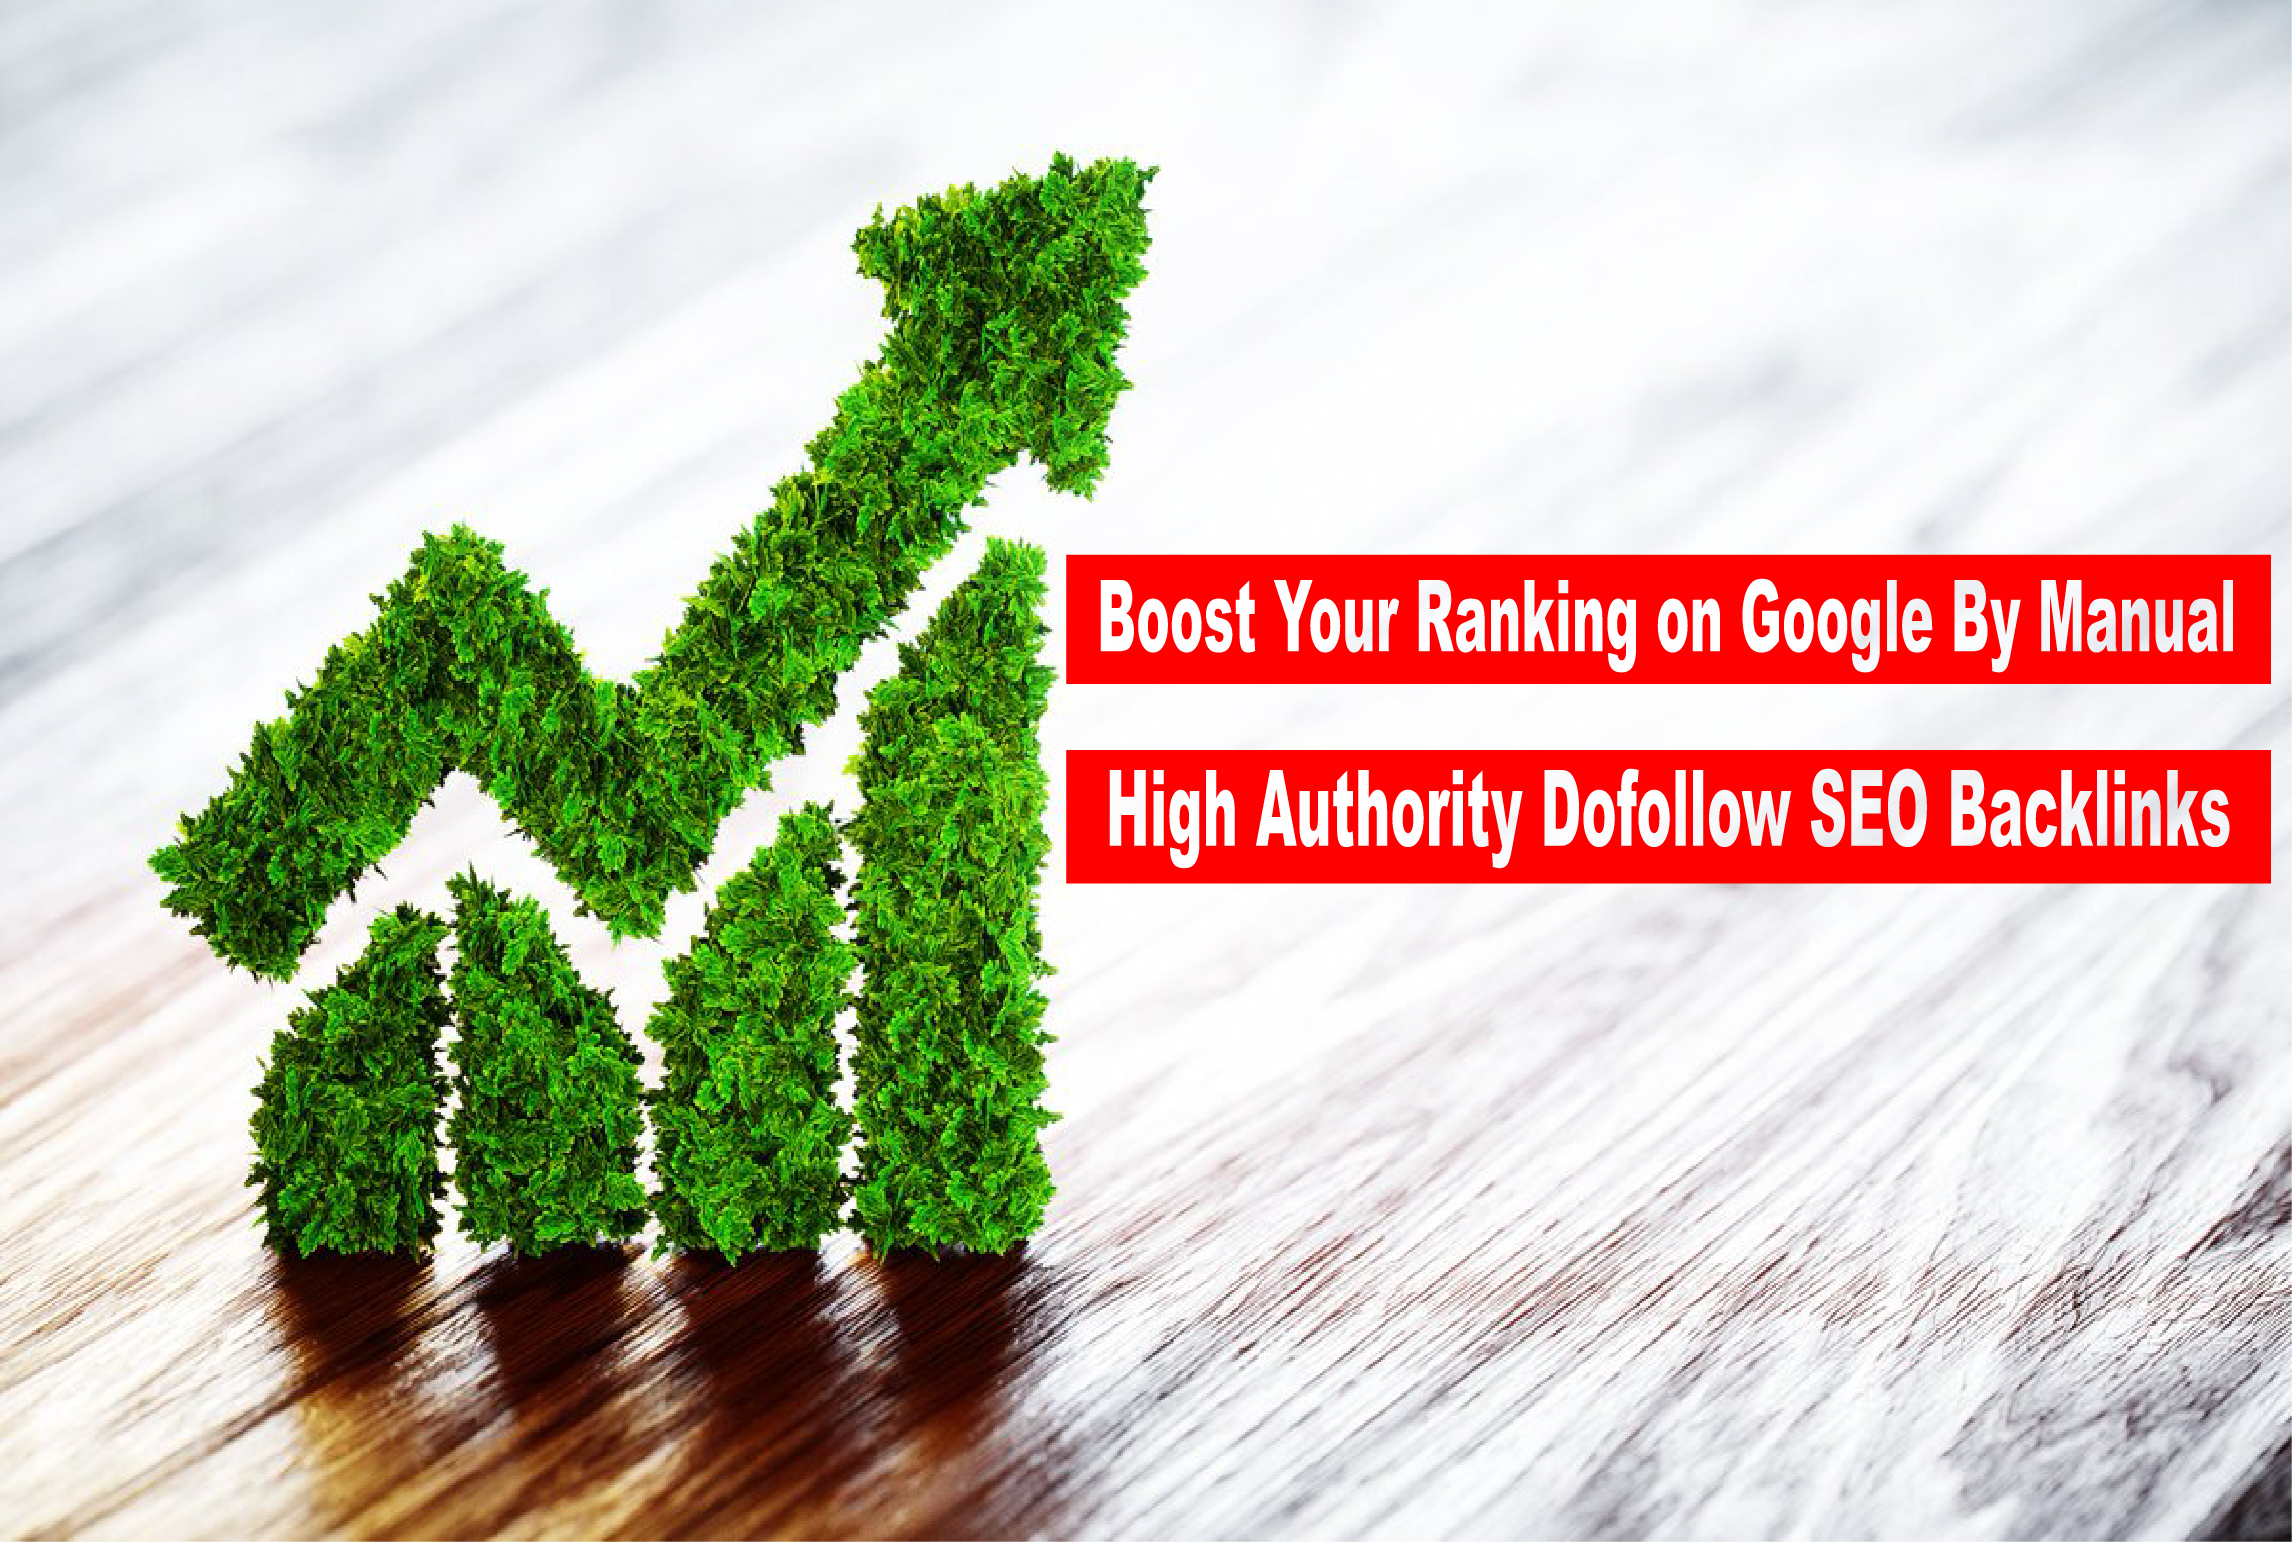 Boost Your Ranking to Page on Google Manual High Authority Dofollow SEO Backlinks